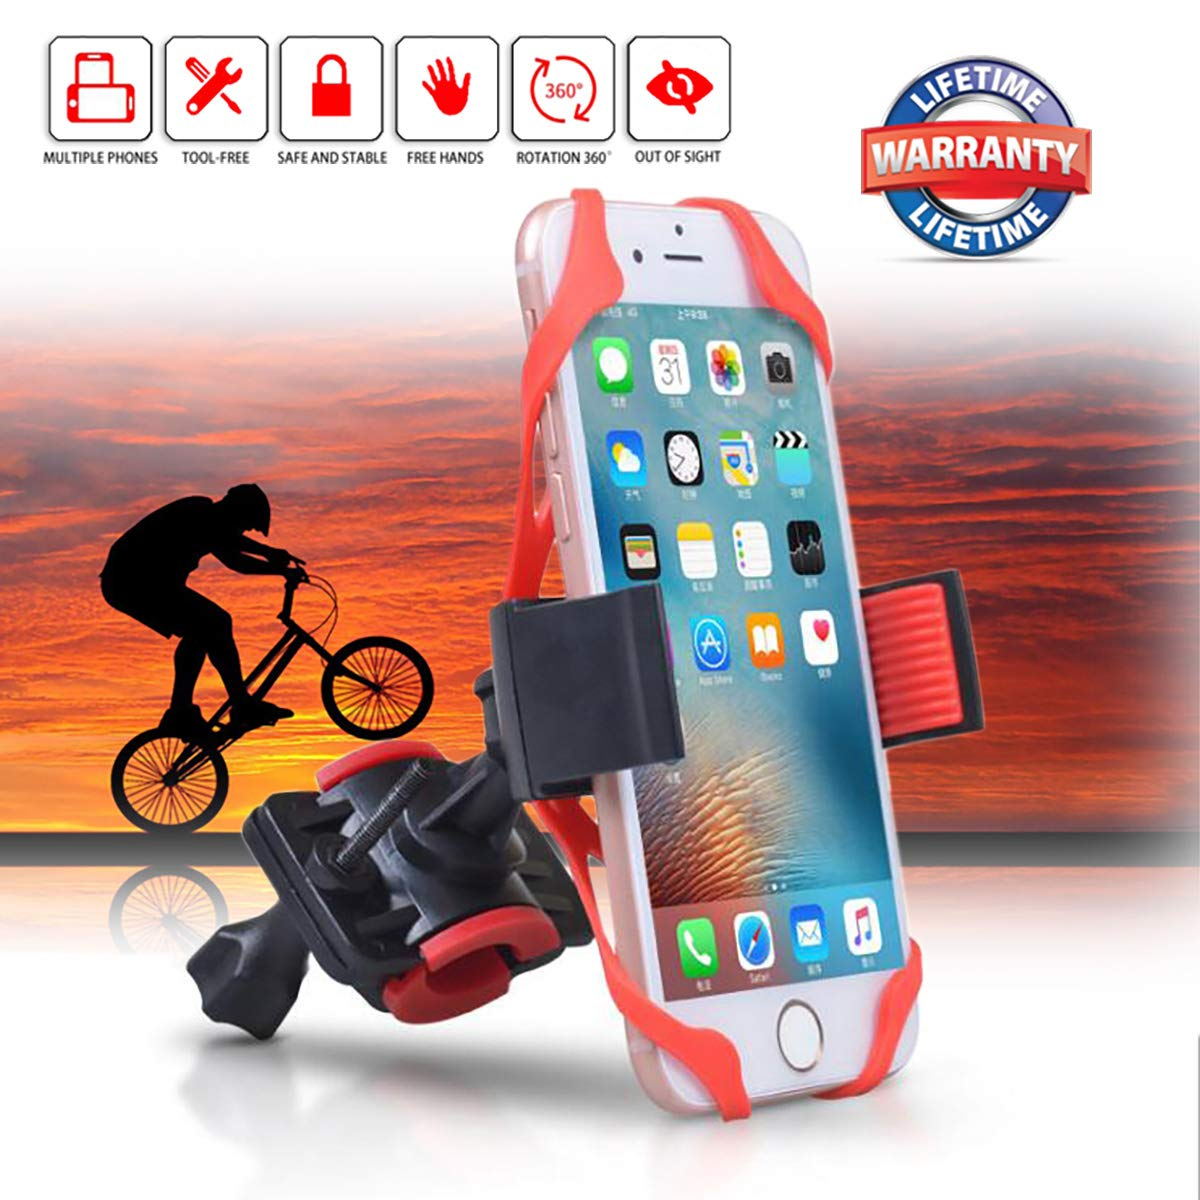 fit Bike//Motorcycle,Easy to Install Motorcycle Phone Mount Holder Securely and Sturdy fits iPhone X 8 8 Plus 7 7 Plus 6 6 Plus Motorcycle Phone Mount Bike Phone Mount Securely and Sturdy fit Different Size Phones Bike Phone Holder with Silicone Strap